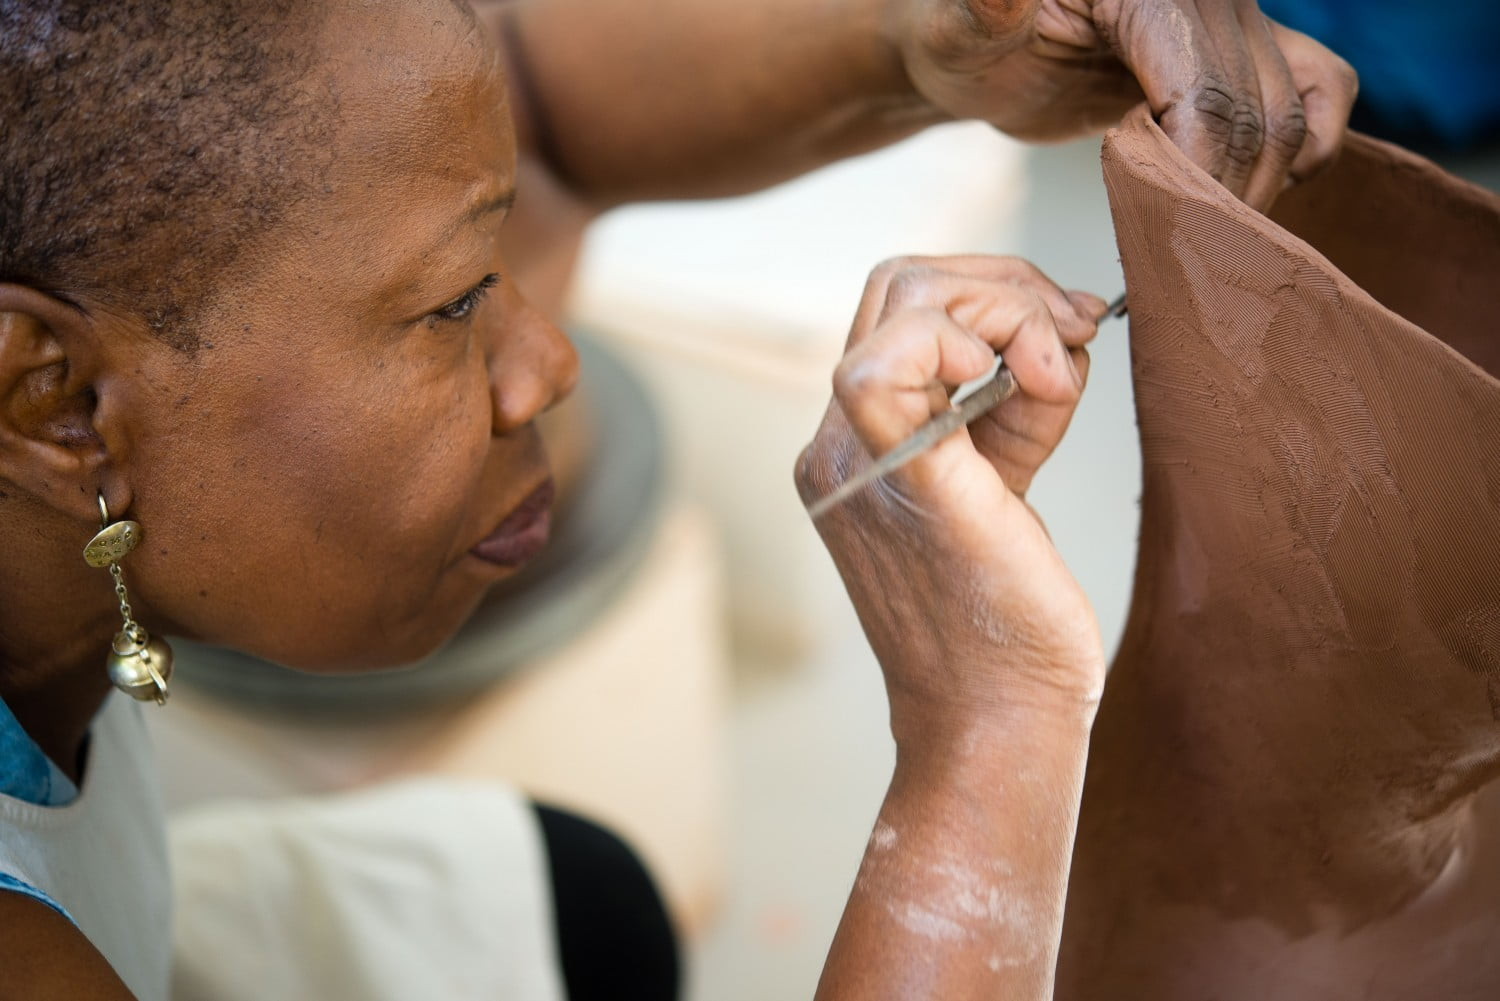 Close up of female working with clay